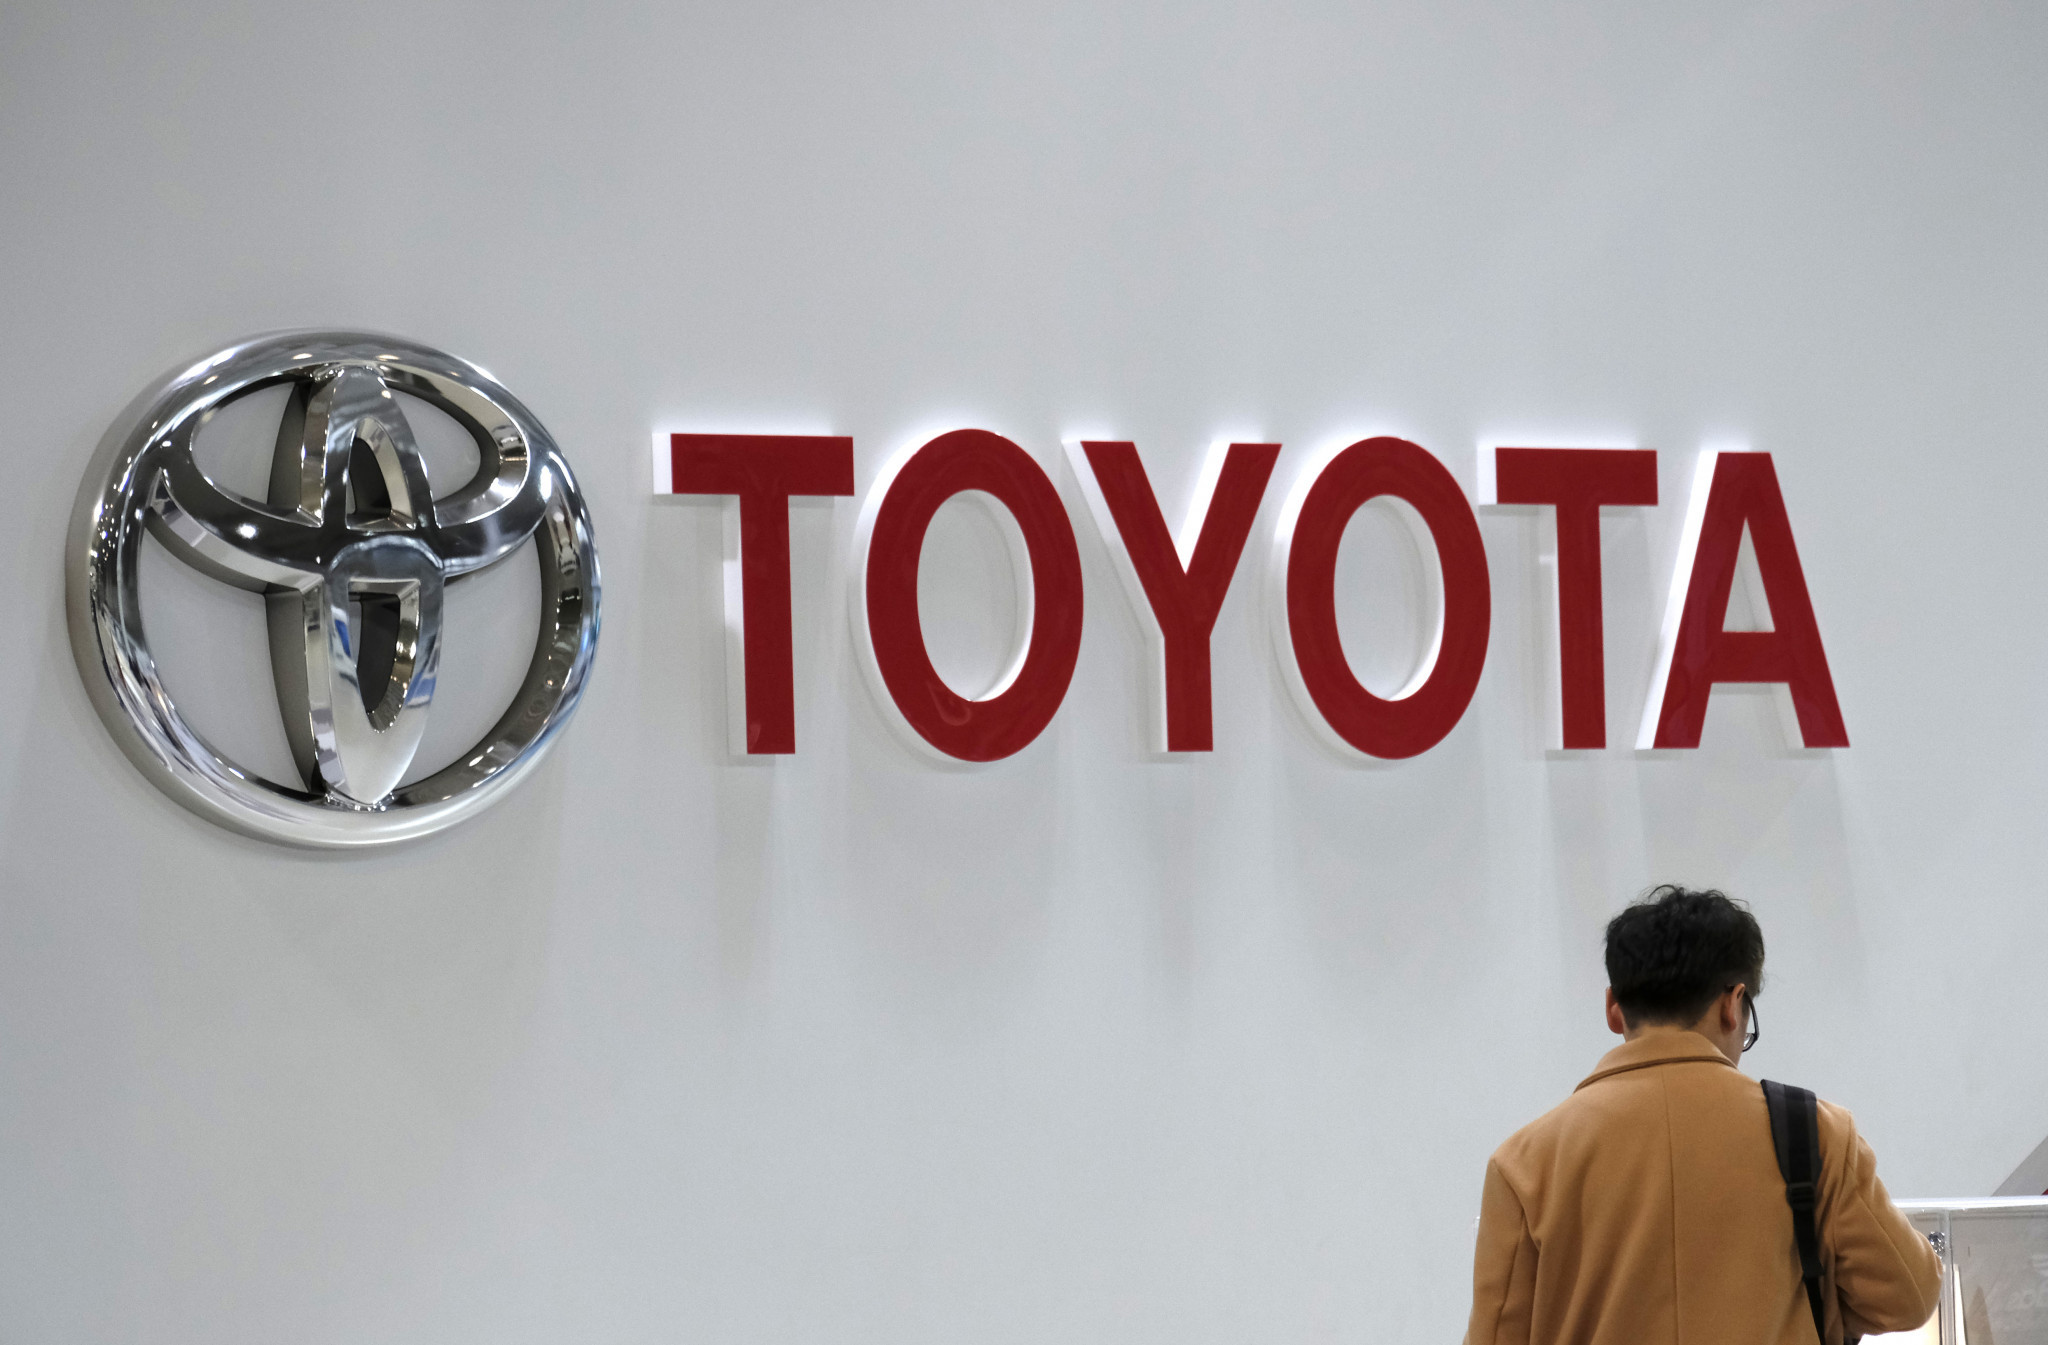 TOP sponsors like Toyota have struggled financially since the COVID-19 pandemic ©Getty Images